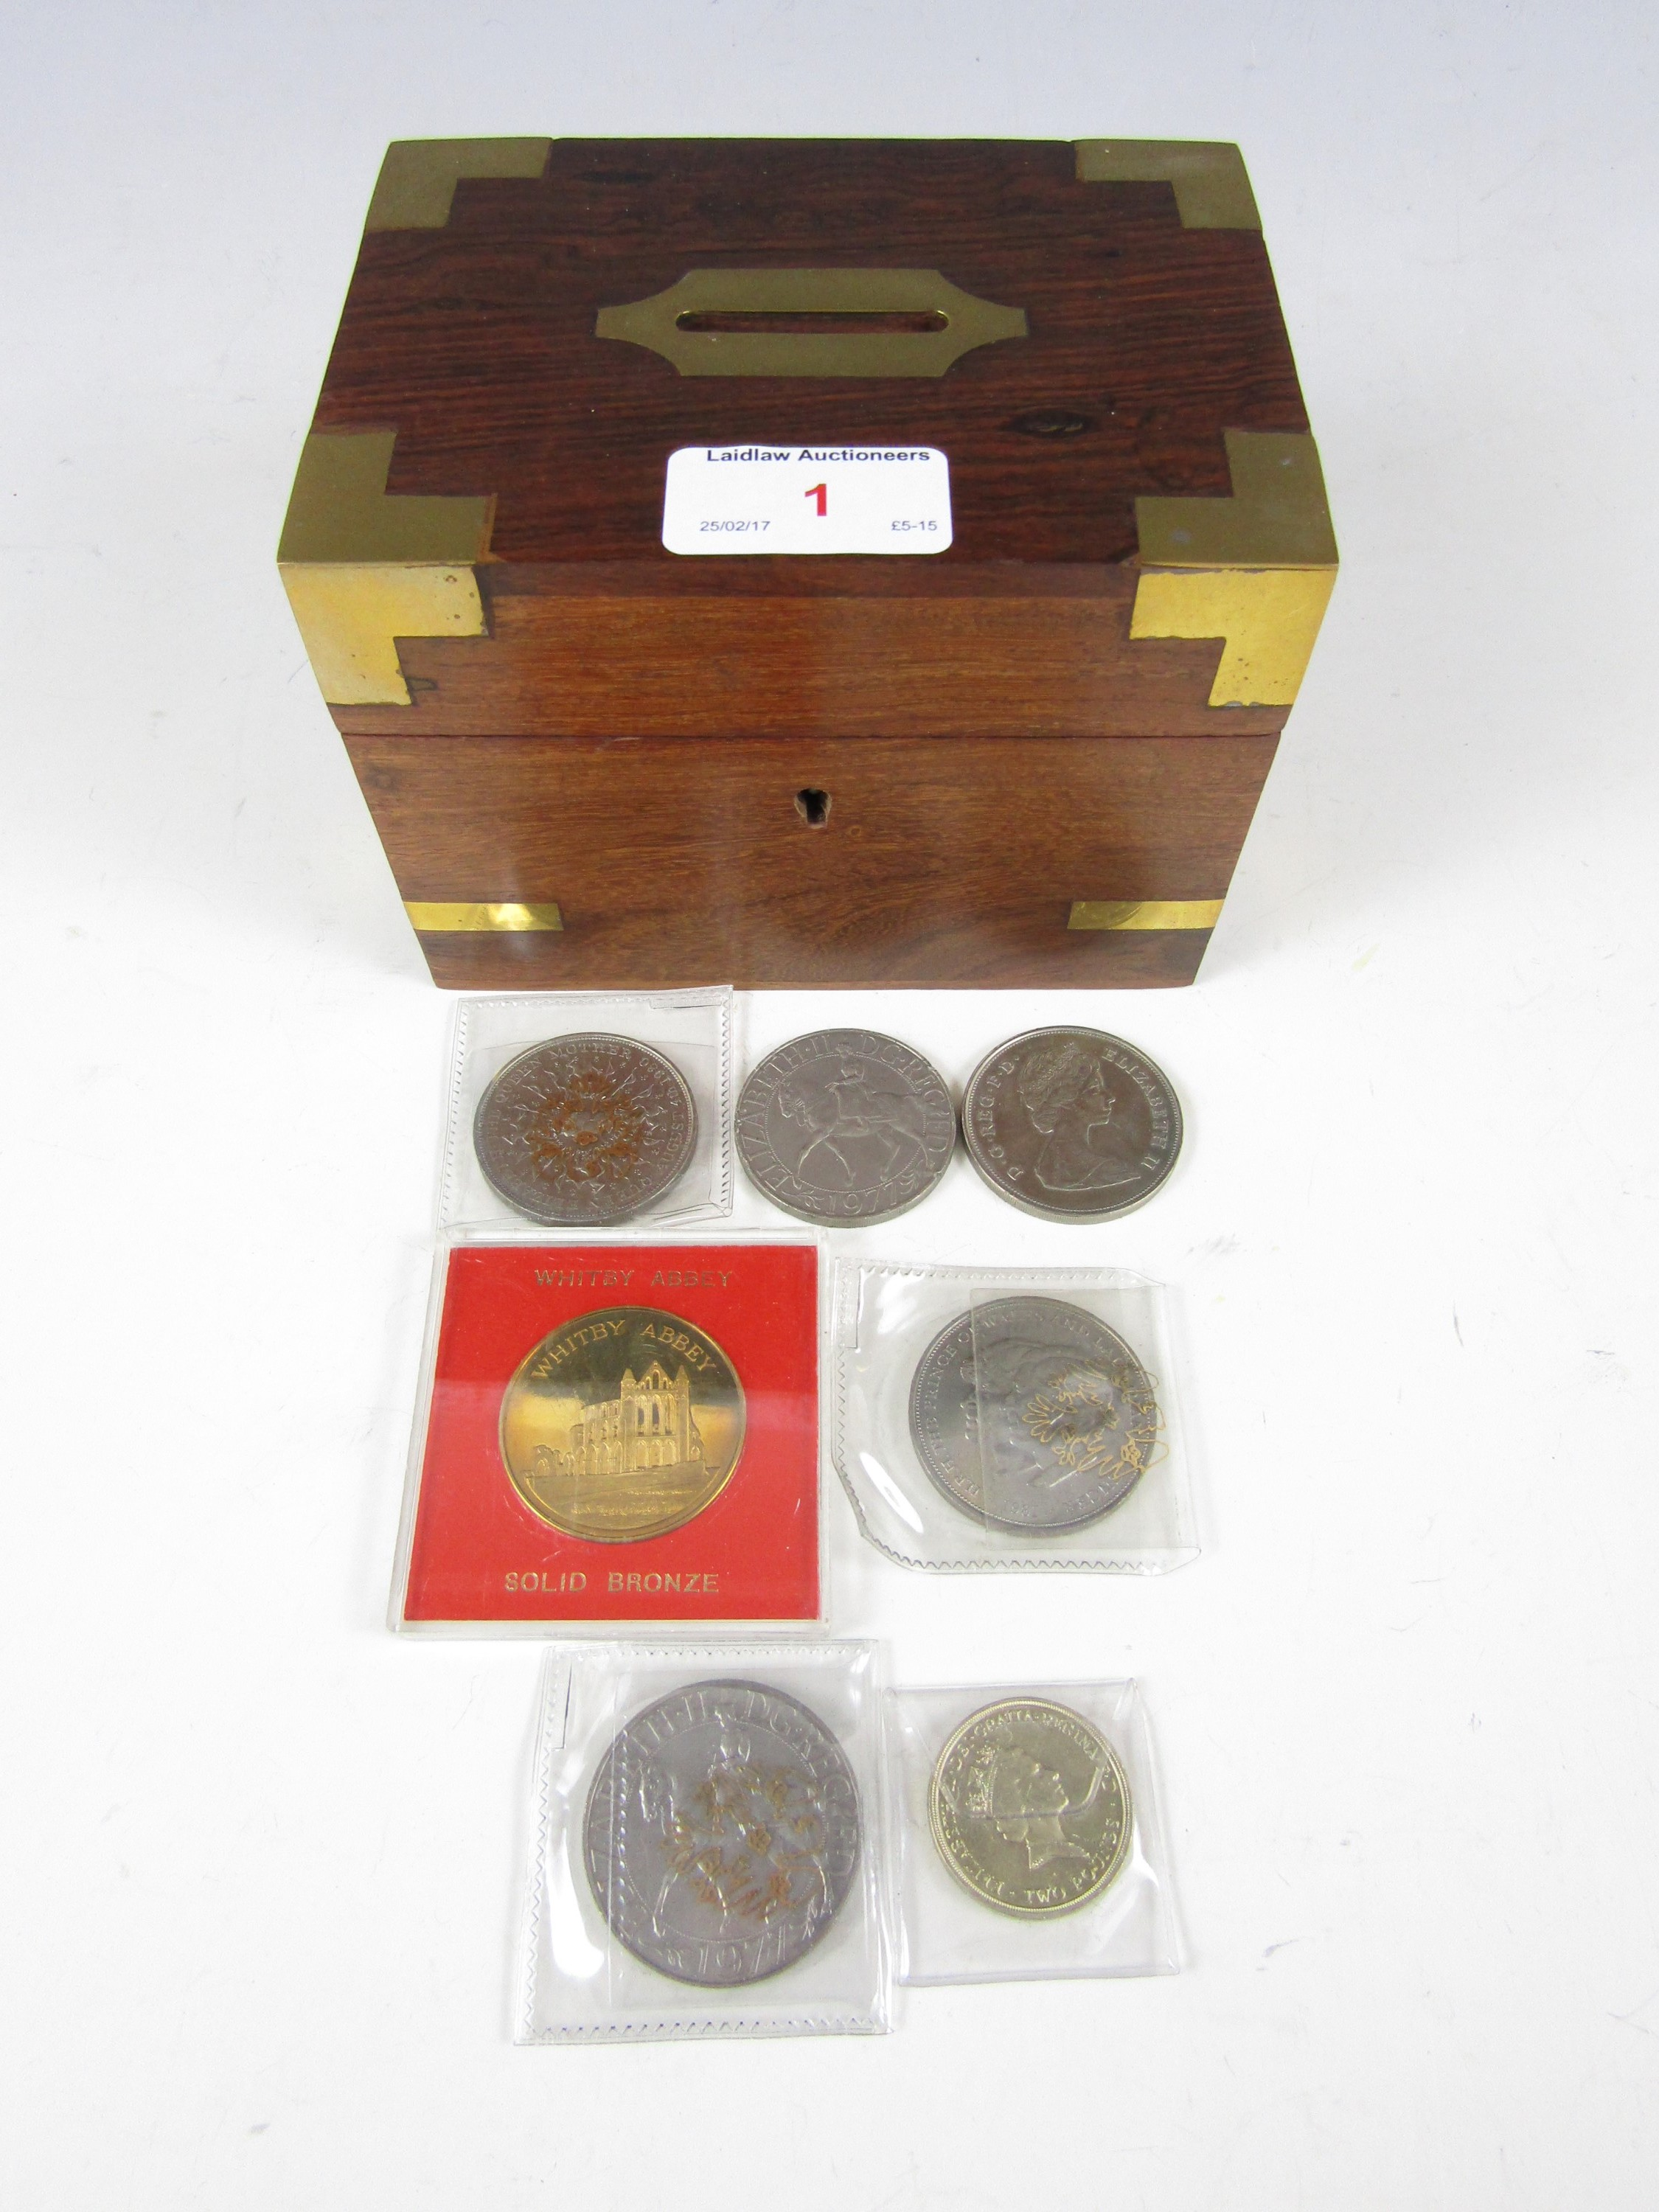 Lot 1 - A brass-mounted money box containing a small quantity of coins